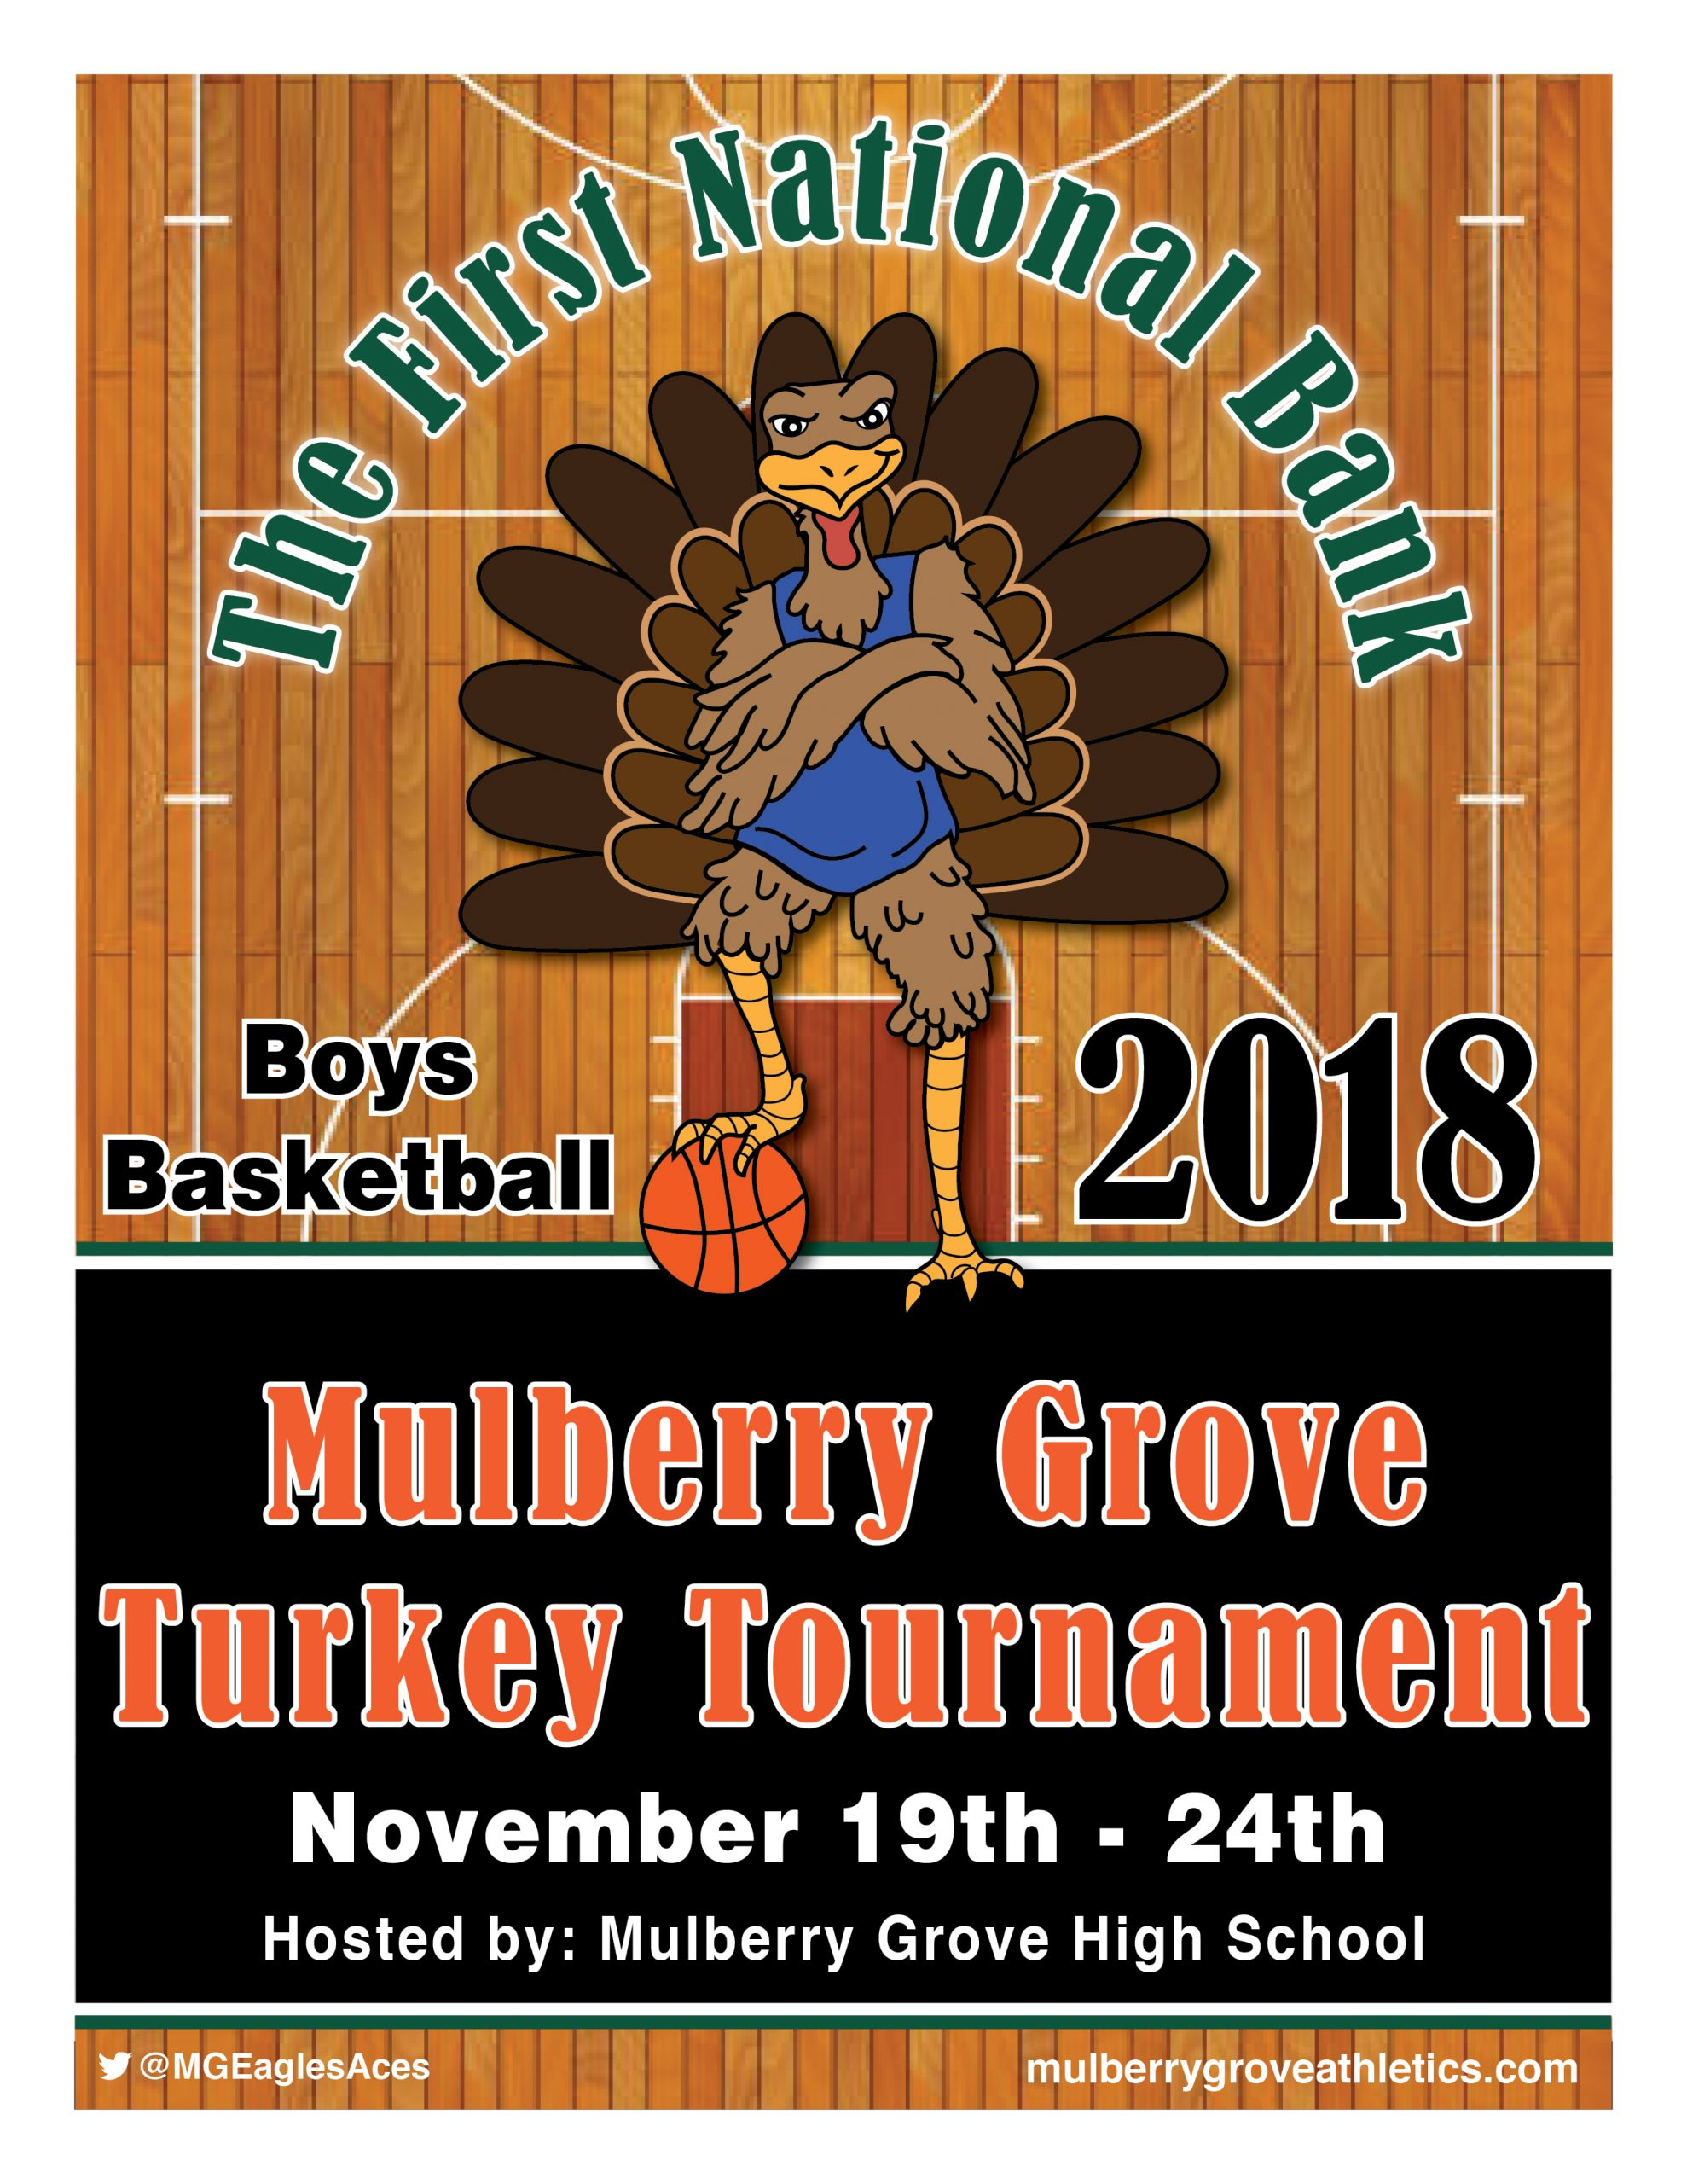 Mulberry Grove, SEB will play for Championship at FNB-MG Thanksgiving Tournament